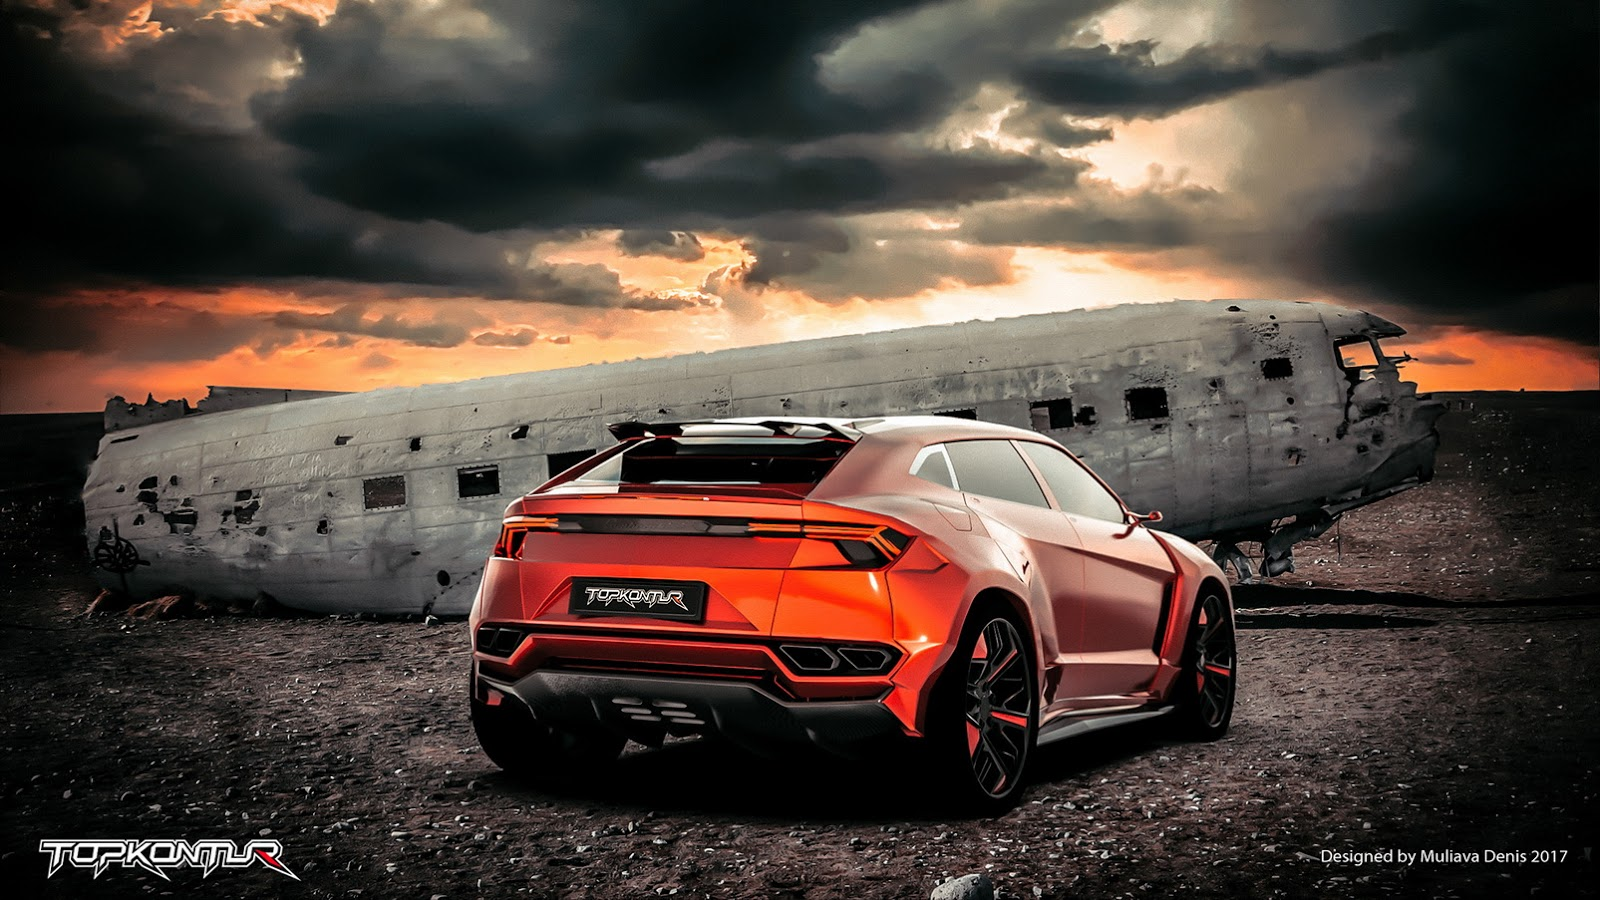 Nissan Gtr Car Hd Wallpapers Lamborghini Urus Not Even Revealed But Gets Tuning Package